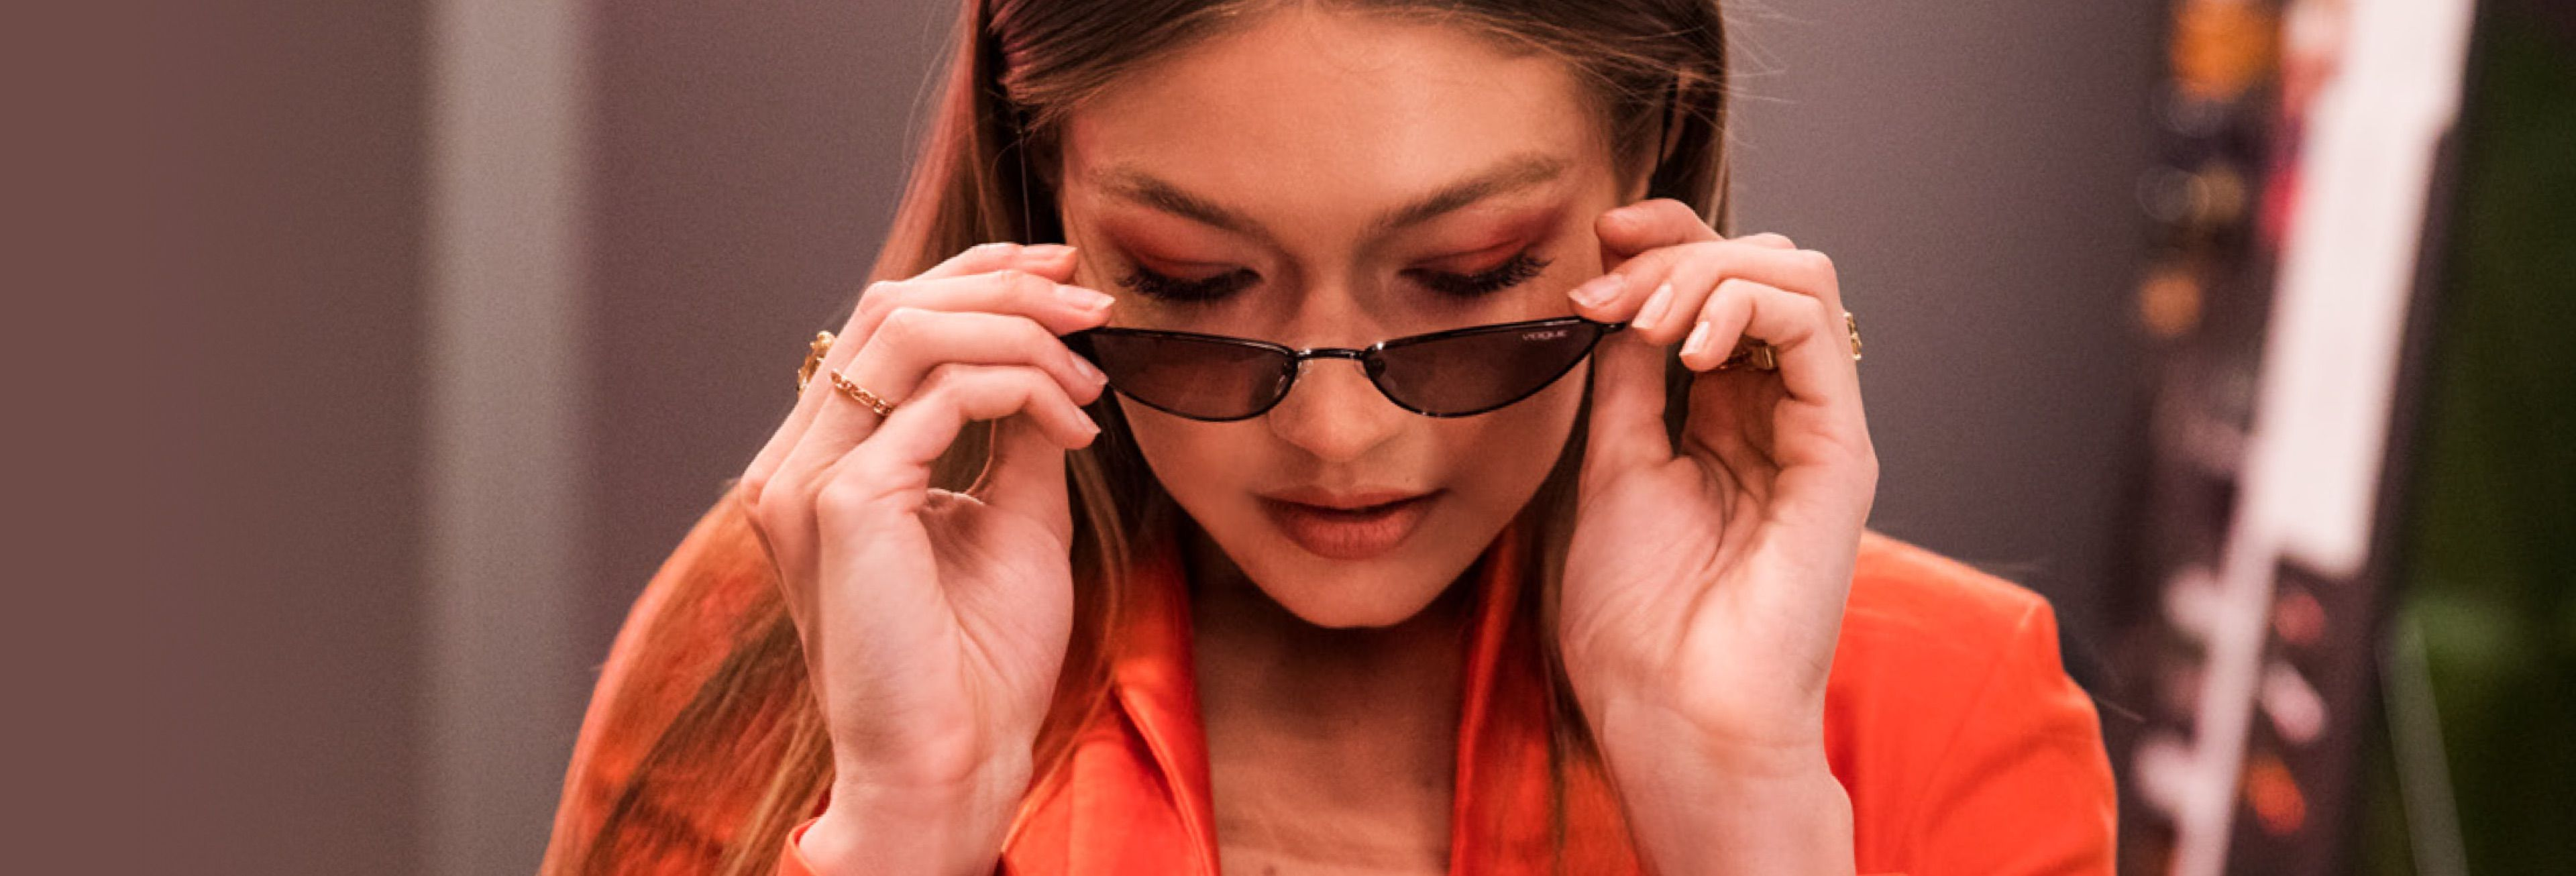 Gigi Hadid collection hero image